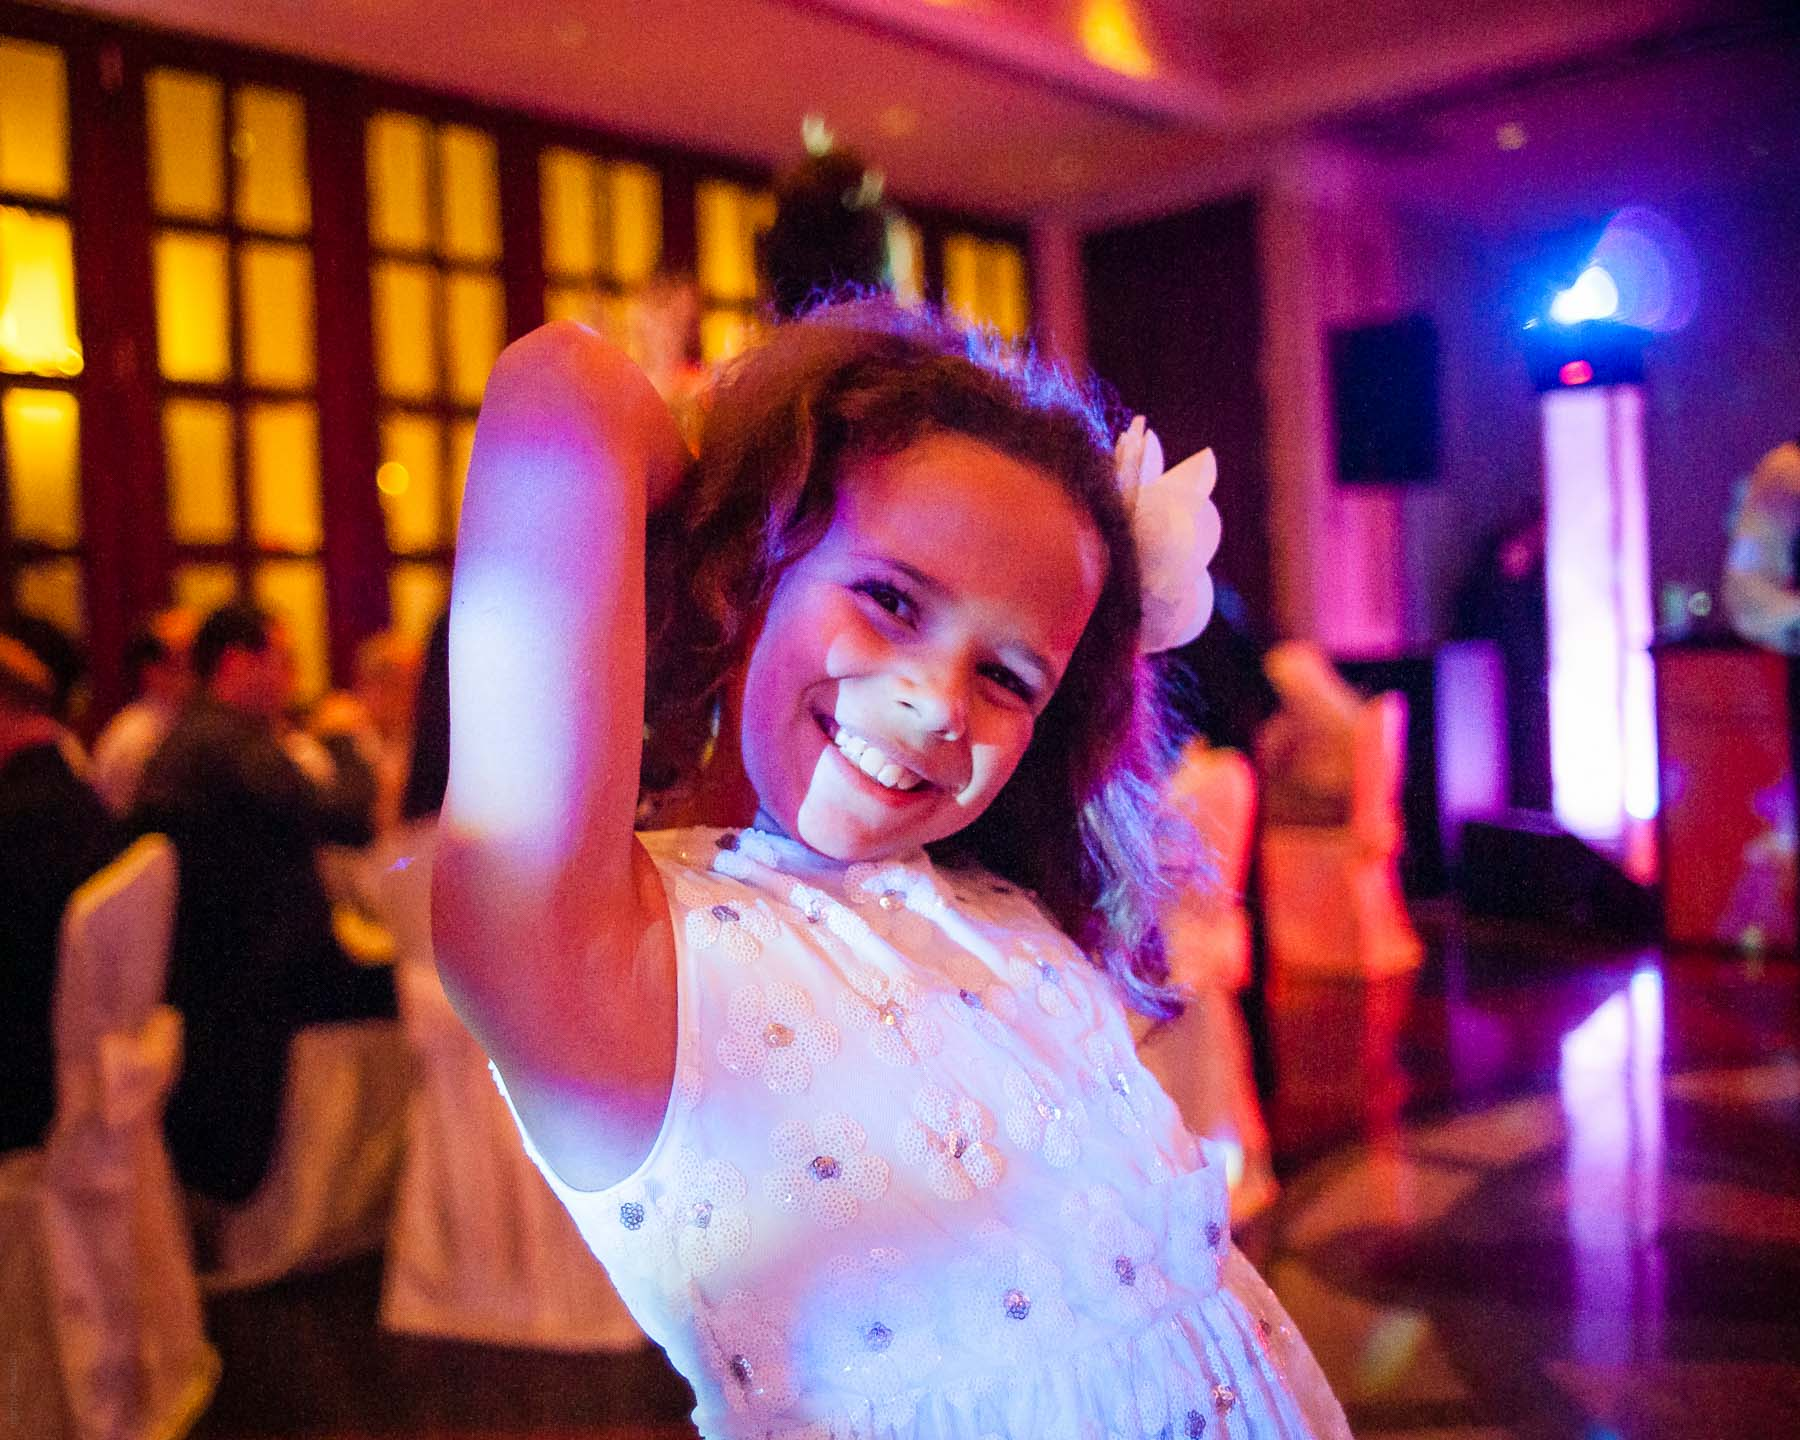 7 year old girl photographs her friend at a wedding with a full-frame DSLR Sony A900